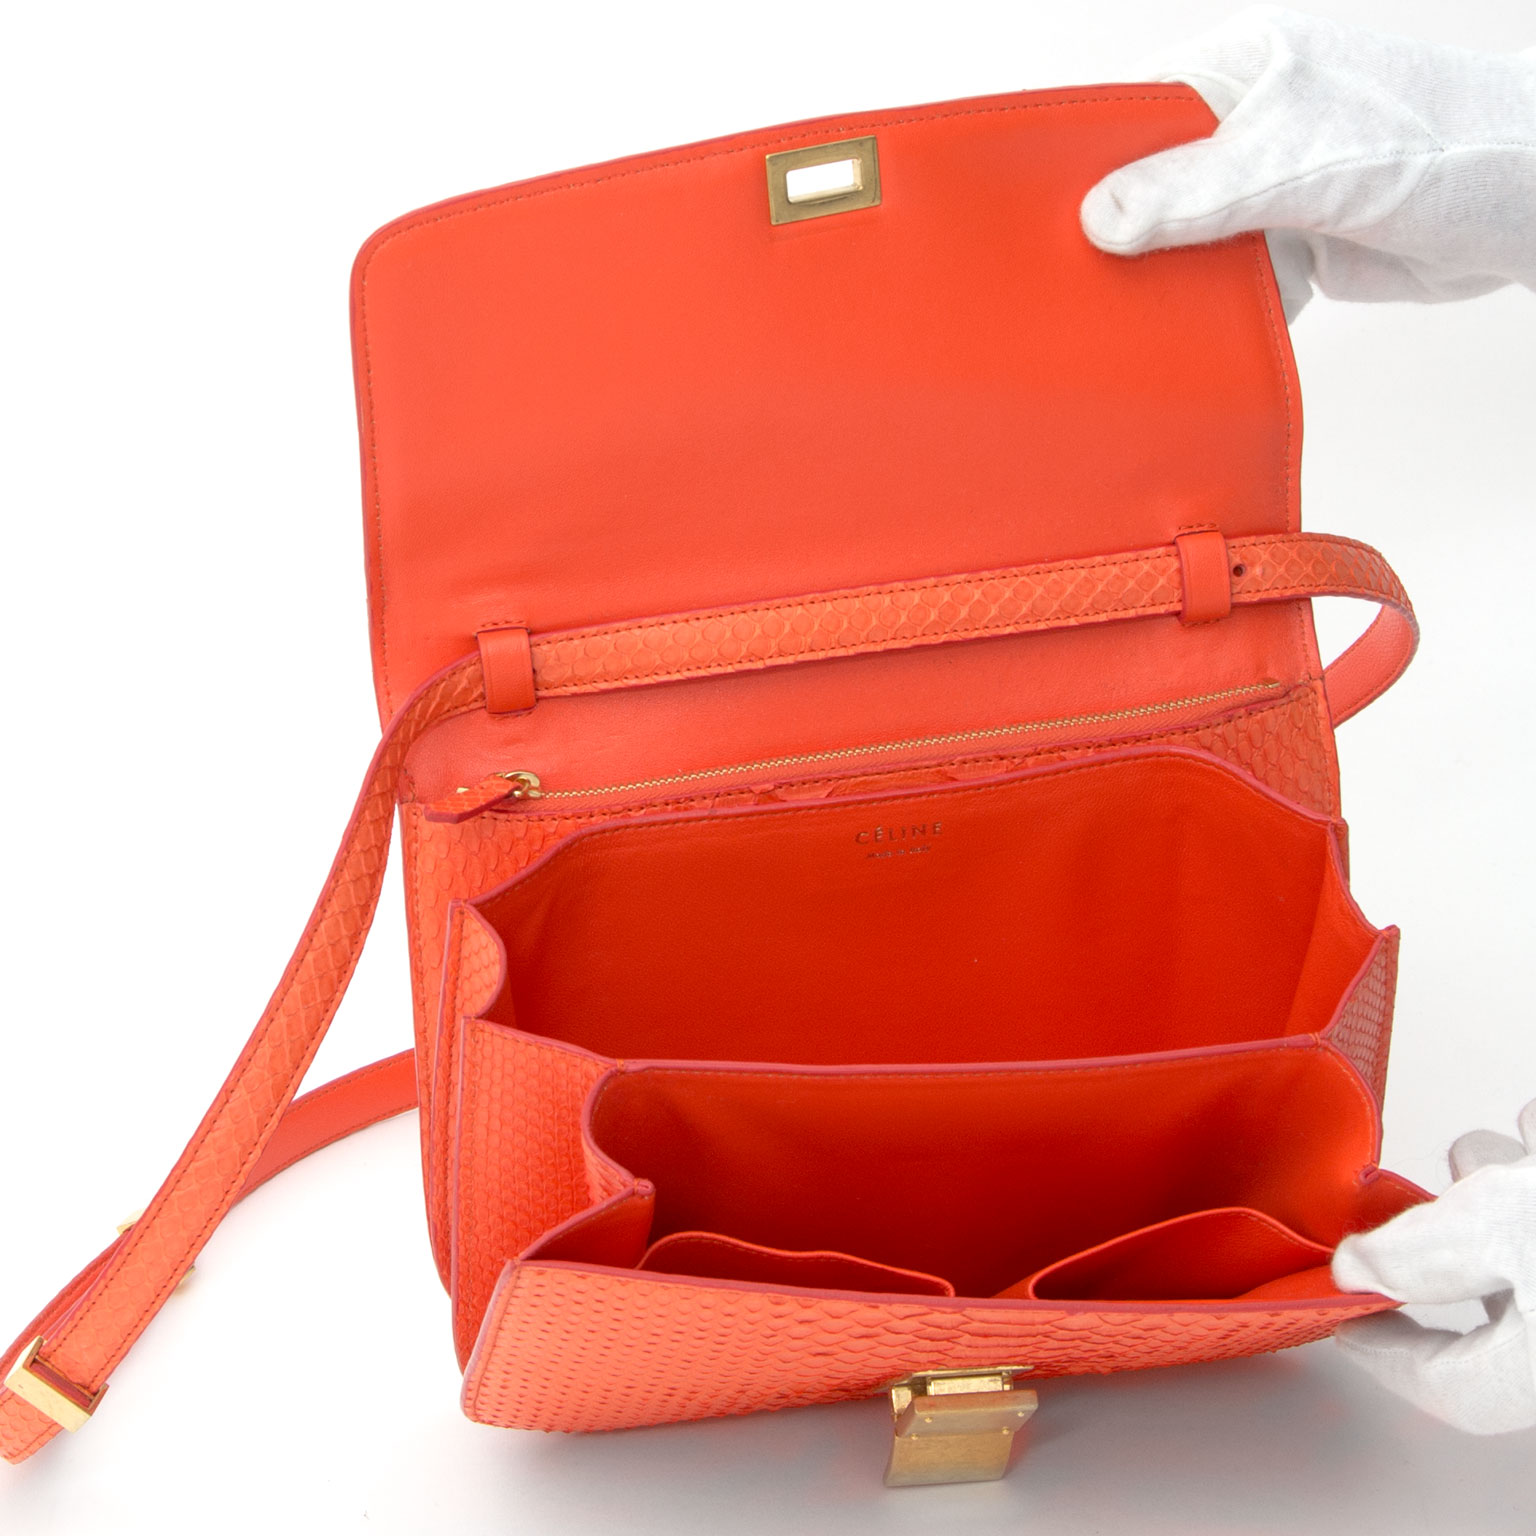 where can i buy a celine bag - Orange Is The New Red - Edits Your go-to shopping place for ...